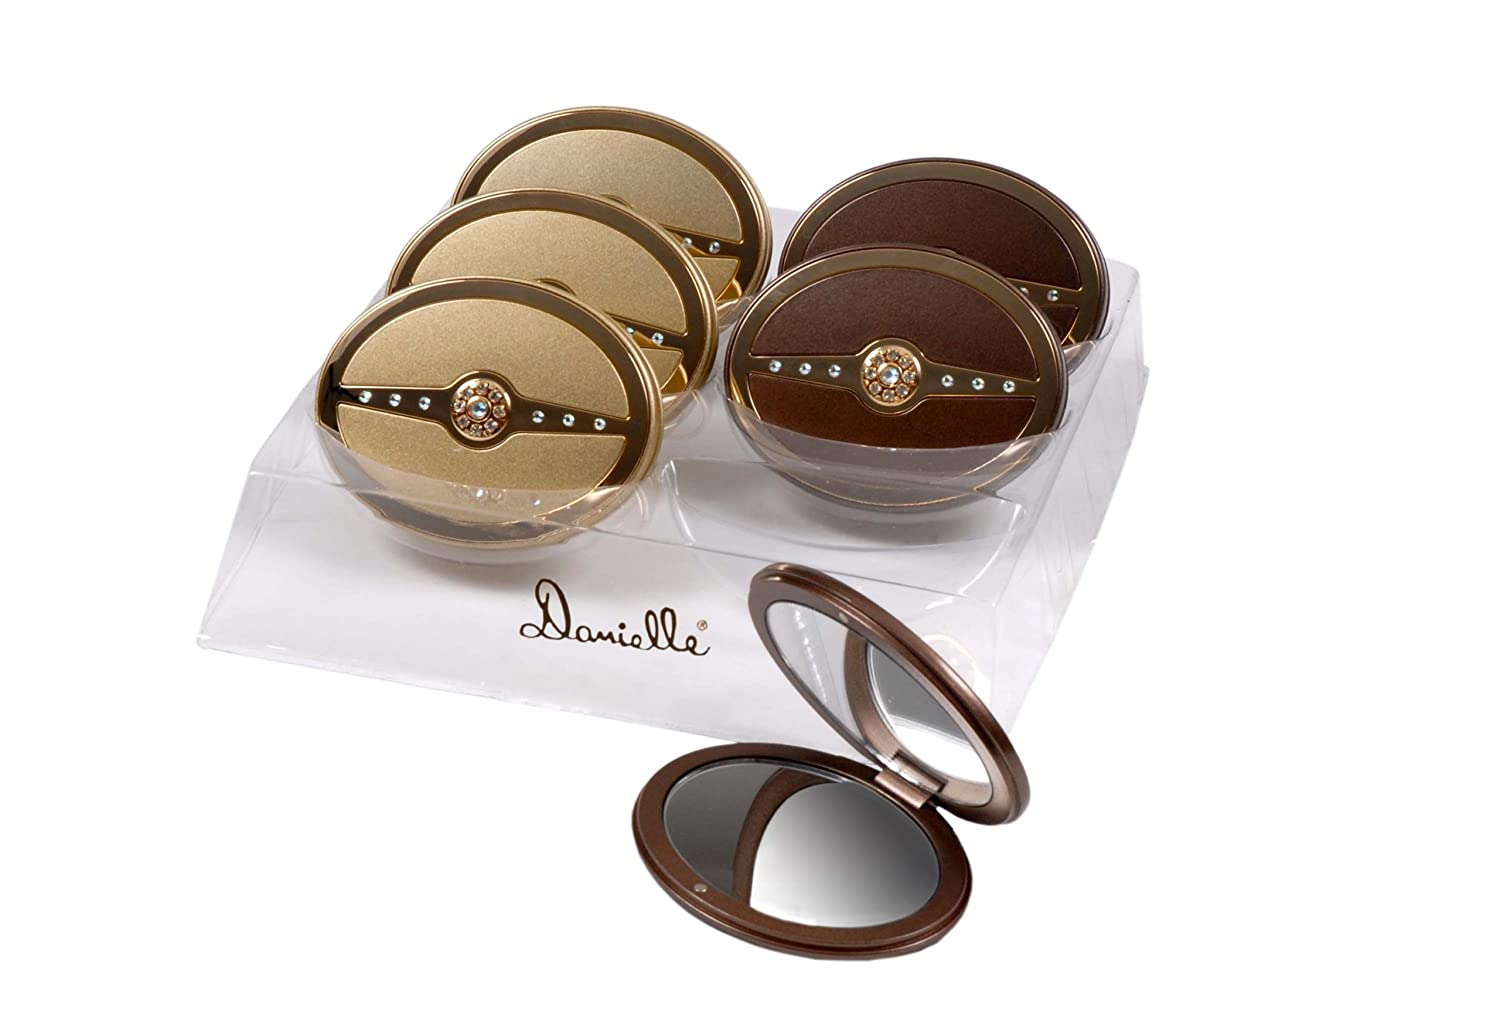 f414505caf Danielle 5x Magnification Swarovski Crystal Bar Oval Compact Mirror -  Champagne Gold or Mocha Gold: Amazon.co.uk: Beauty